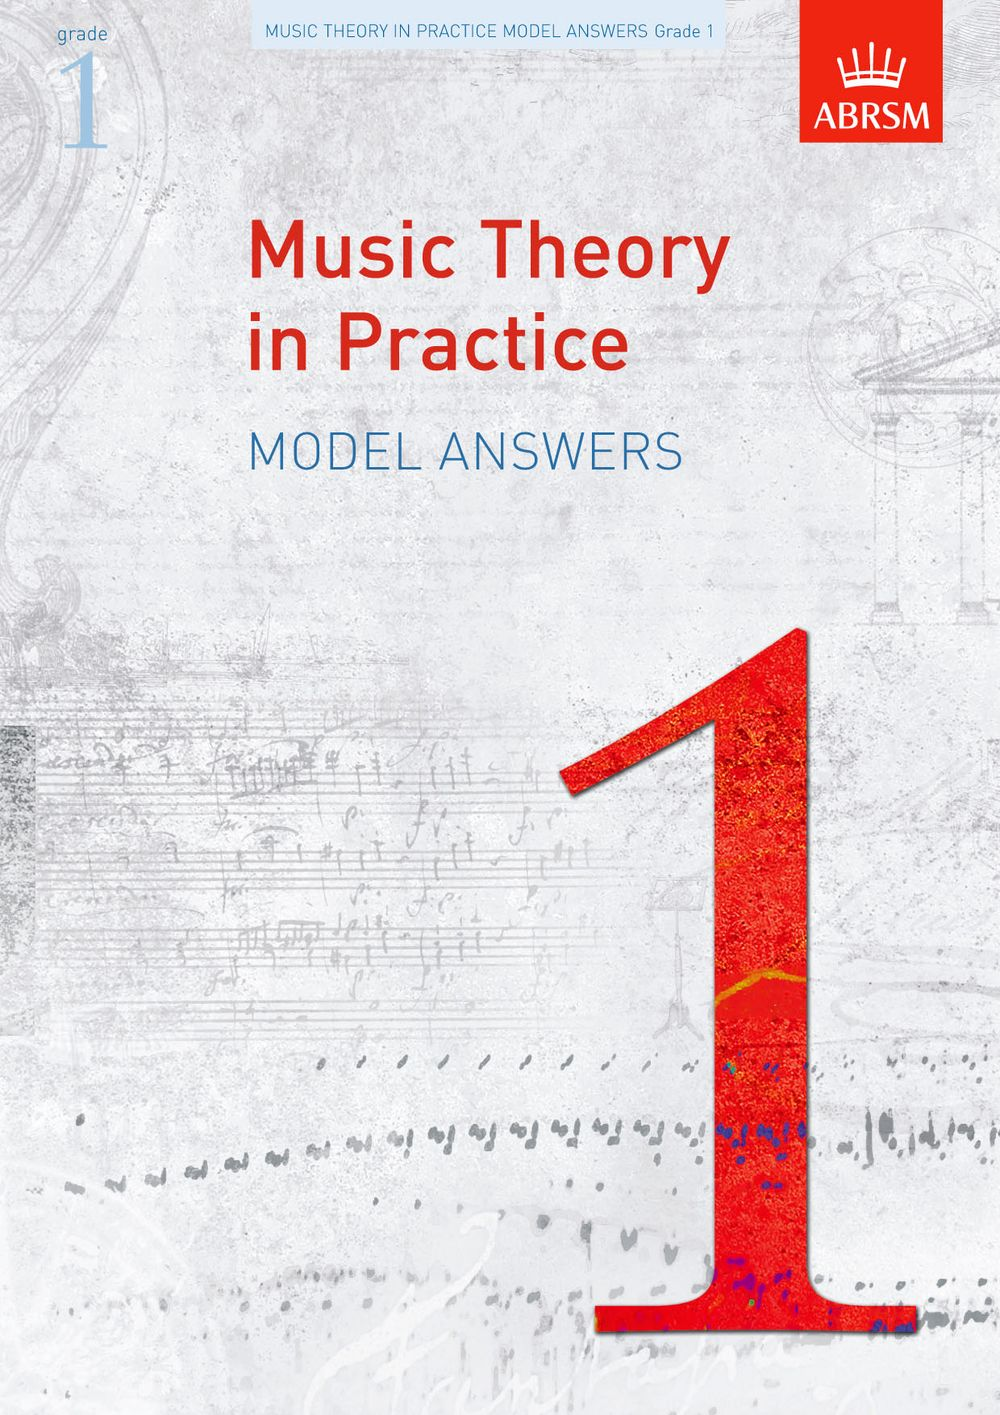 Music Theory in Practice Model Answers  Grade 1: Theory